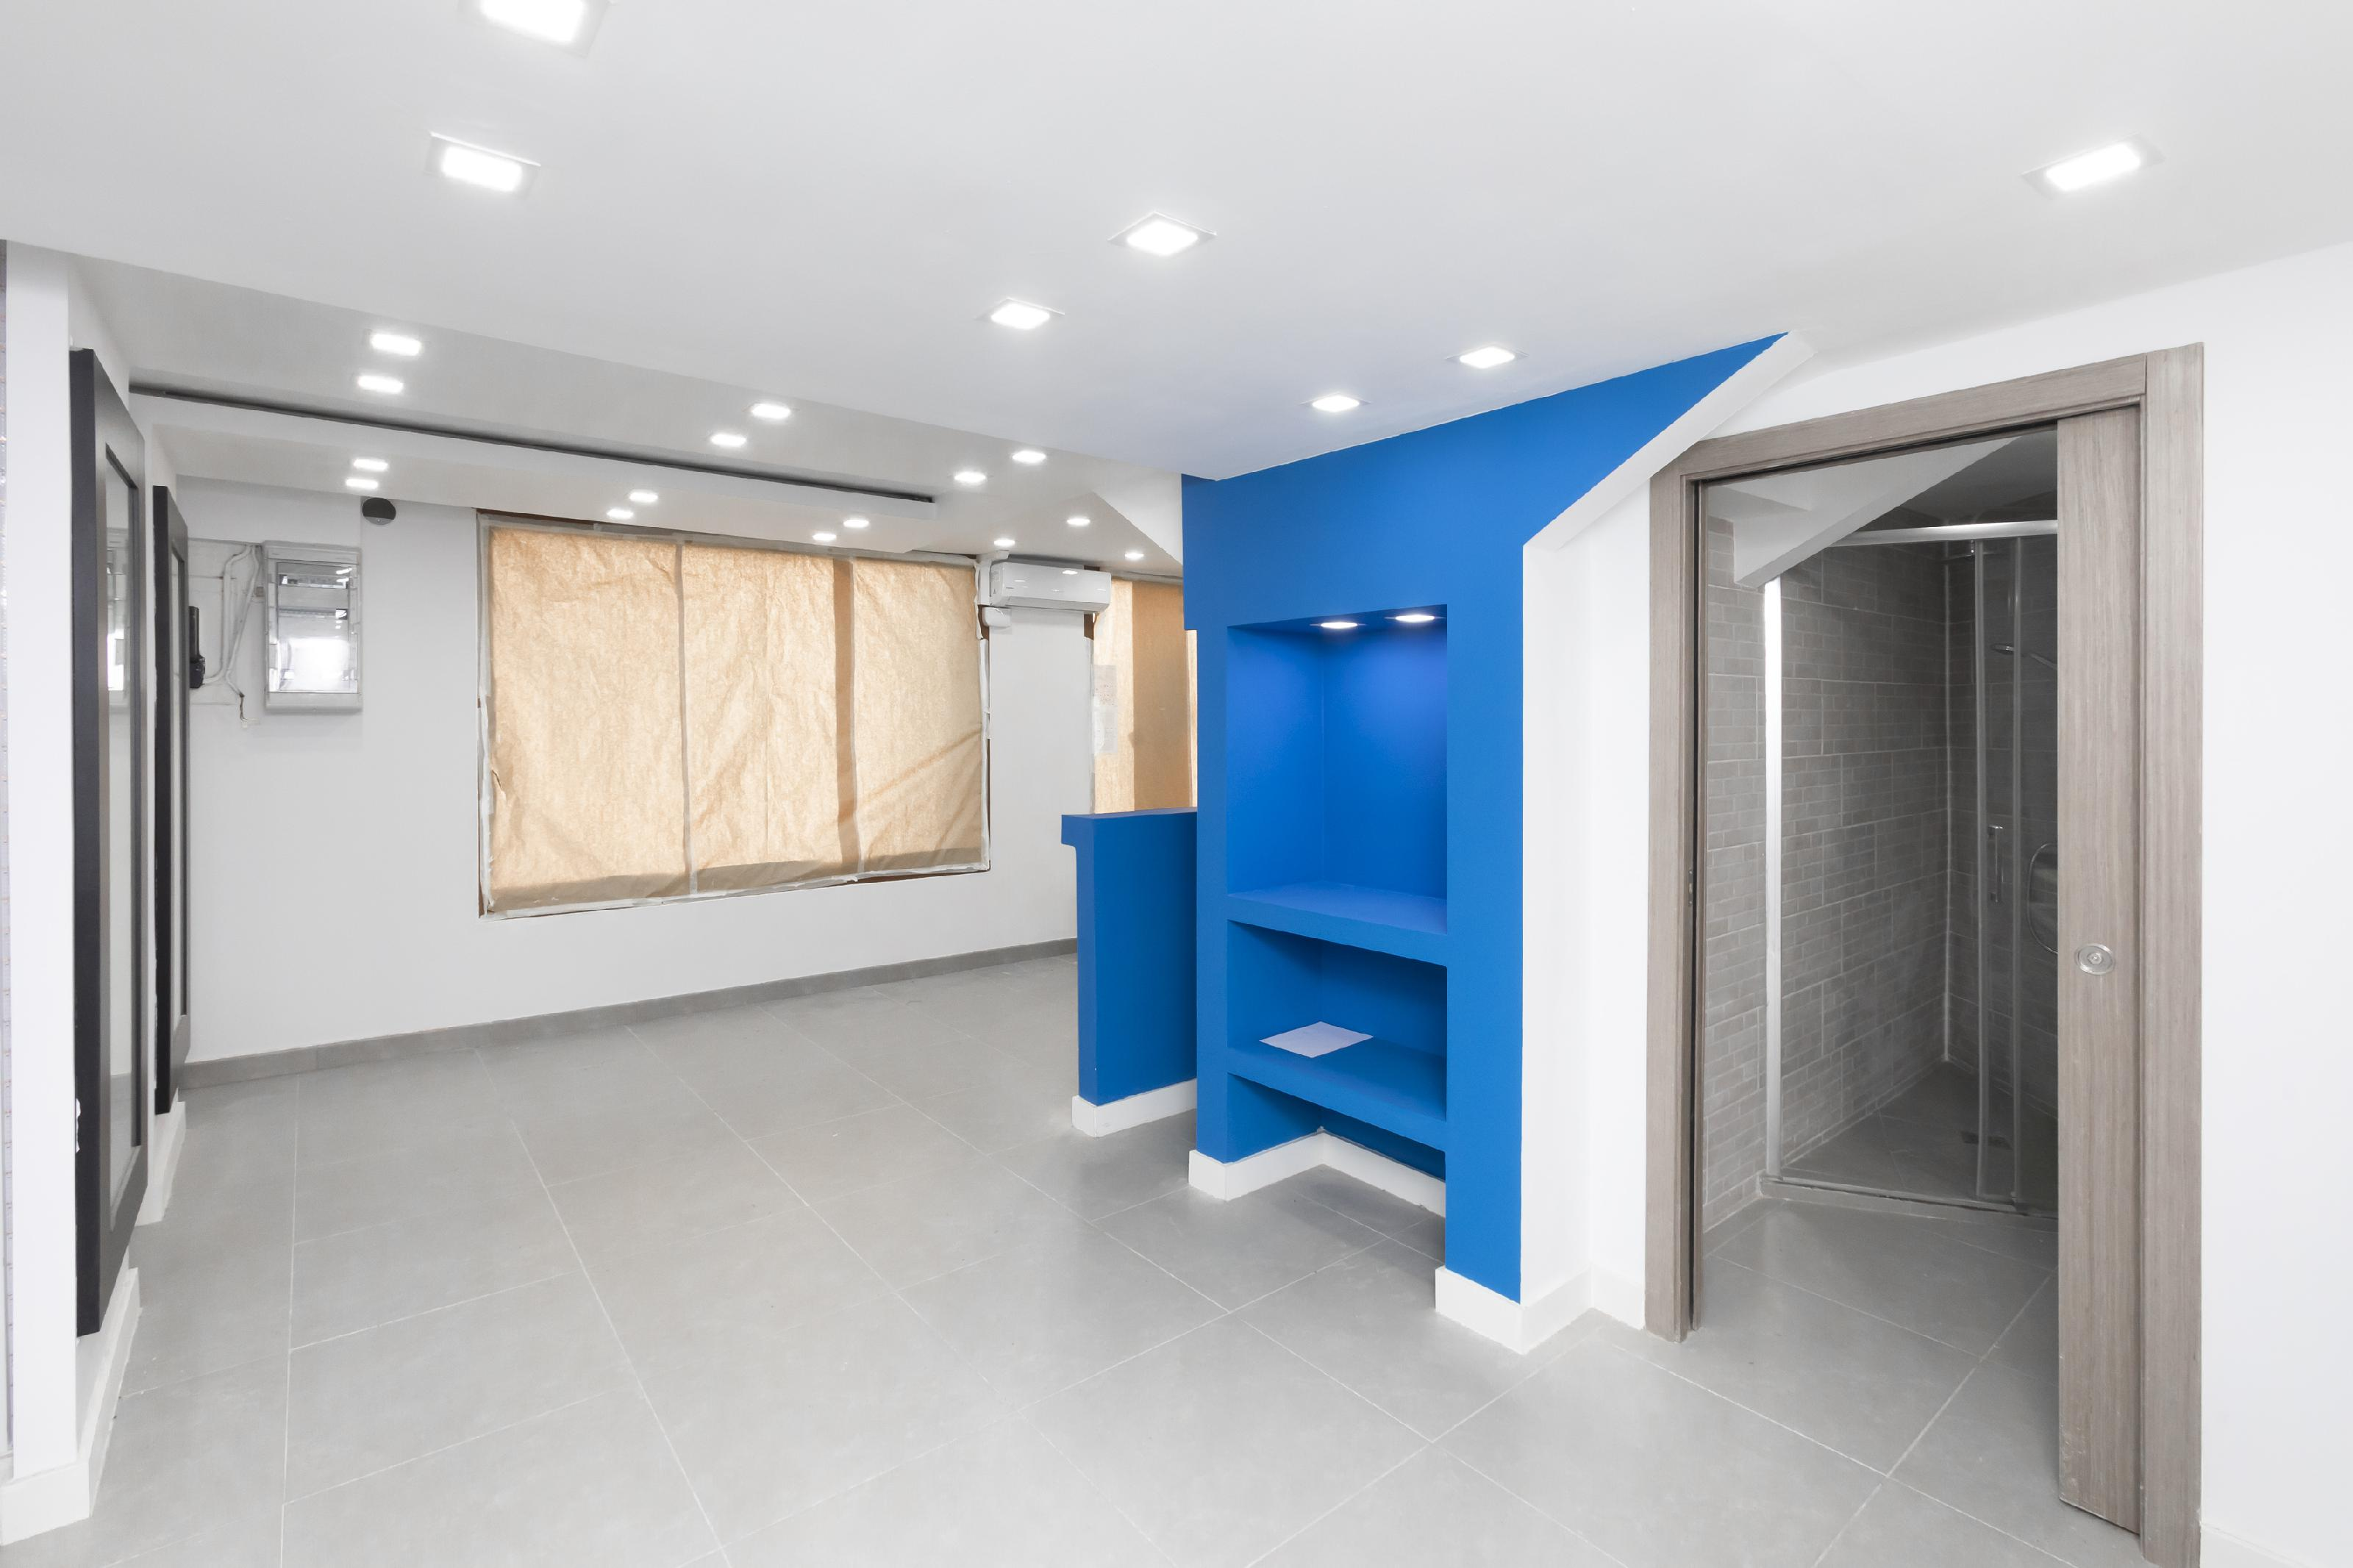 242978 Flat for sale in Gràcia, Camp Grassot and Gràcia Nova 2